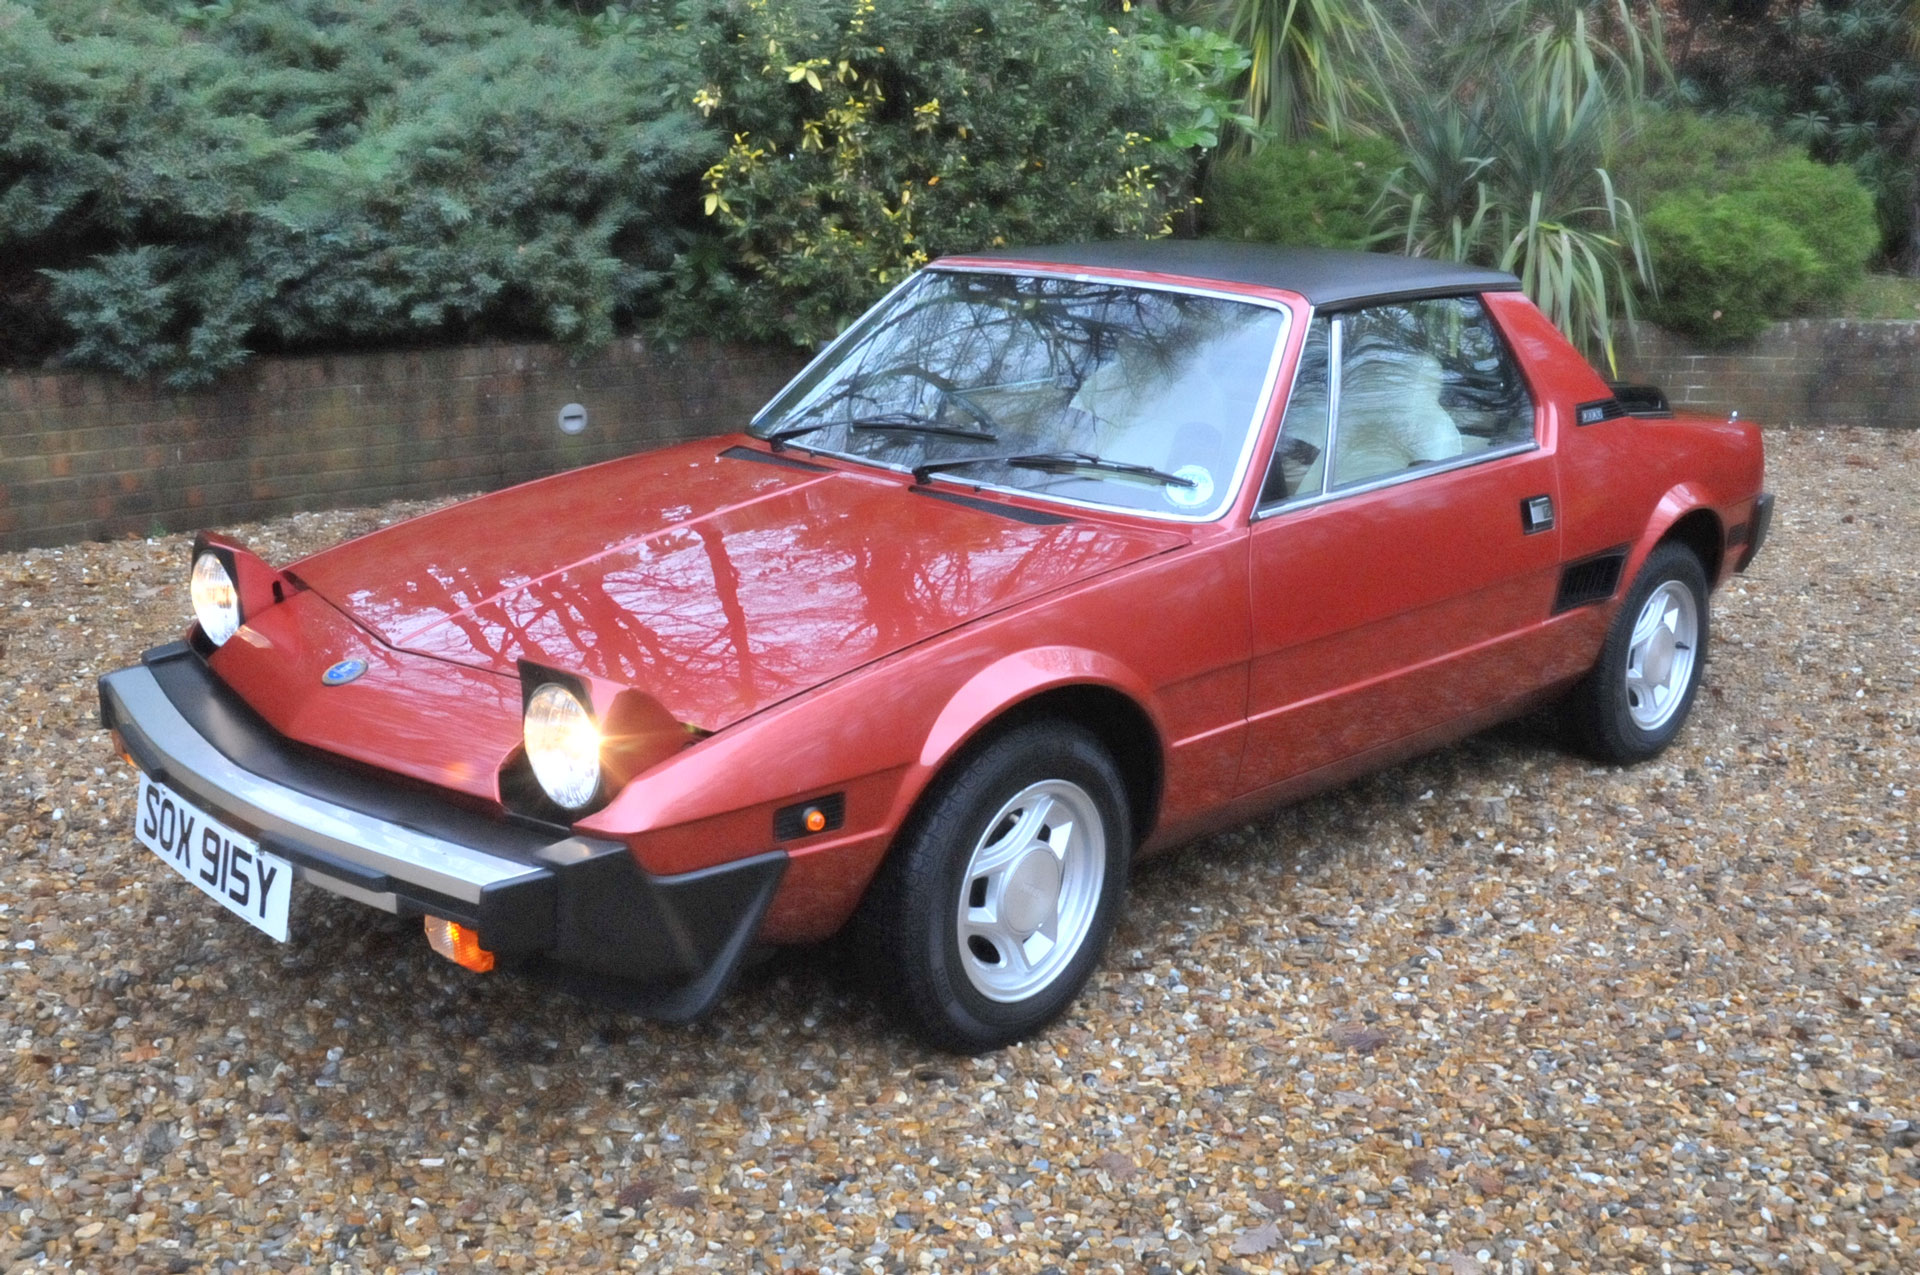 buy or treasures bricklin sport the of junkyard badged a car spider this could img middle bertone pininfarina american autoweek to treasure article buyers during fiat